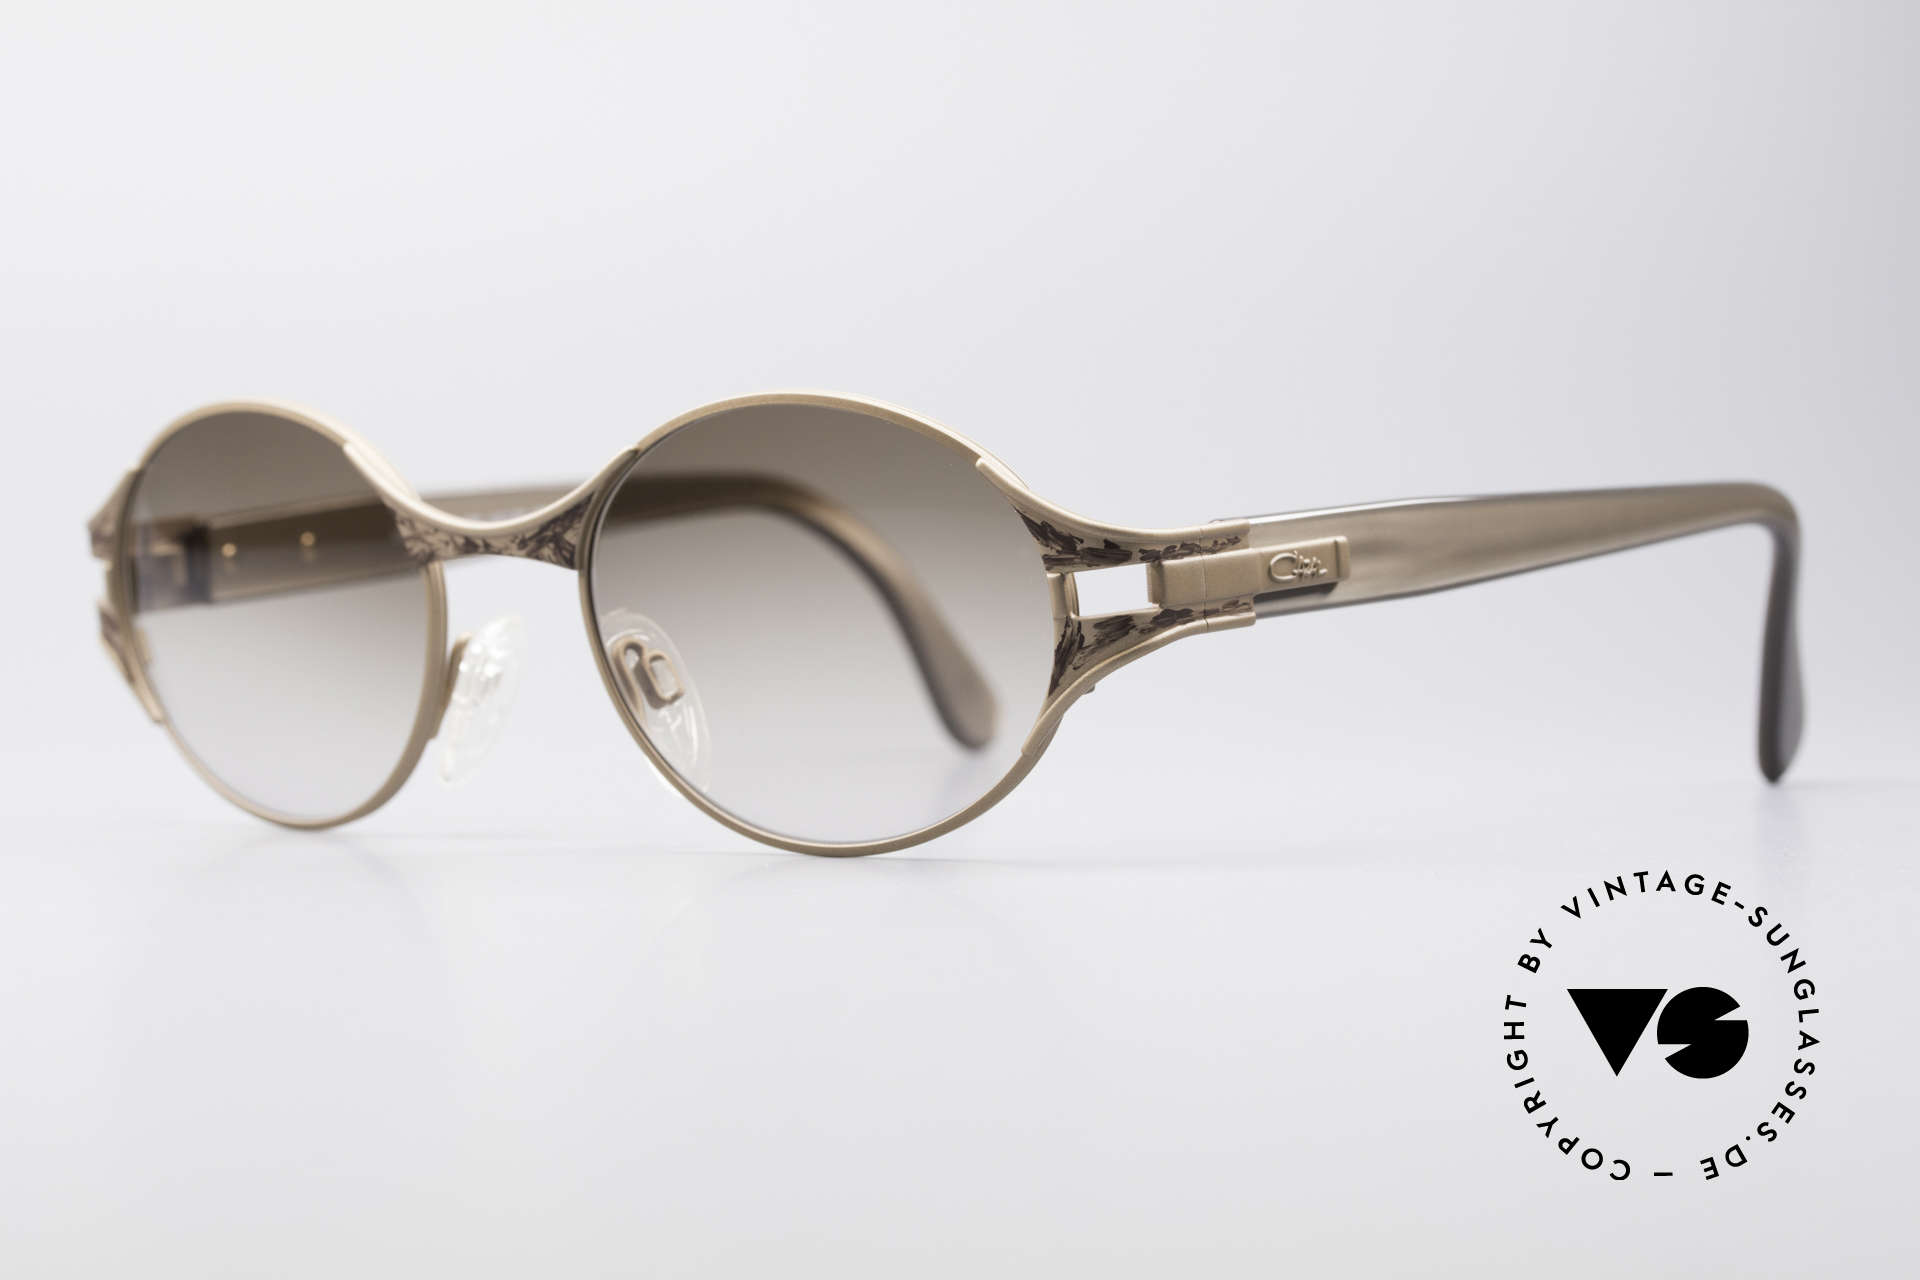 Cazal 281 90's Sunglasses Oval Round, coloration, materials & craftsmanship on top-level, Made for Women